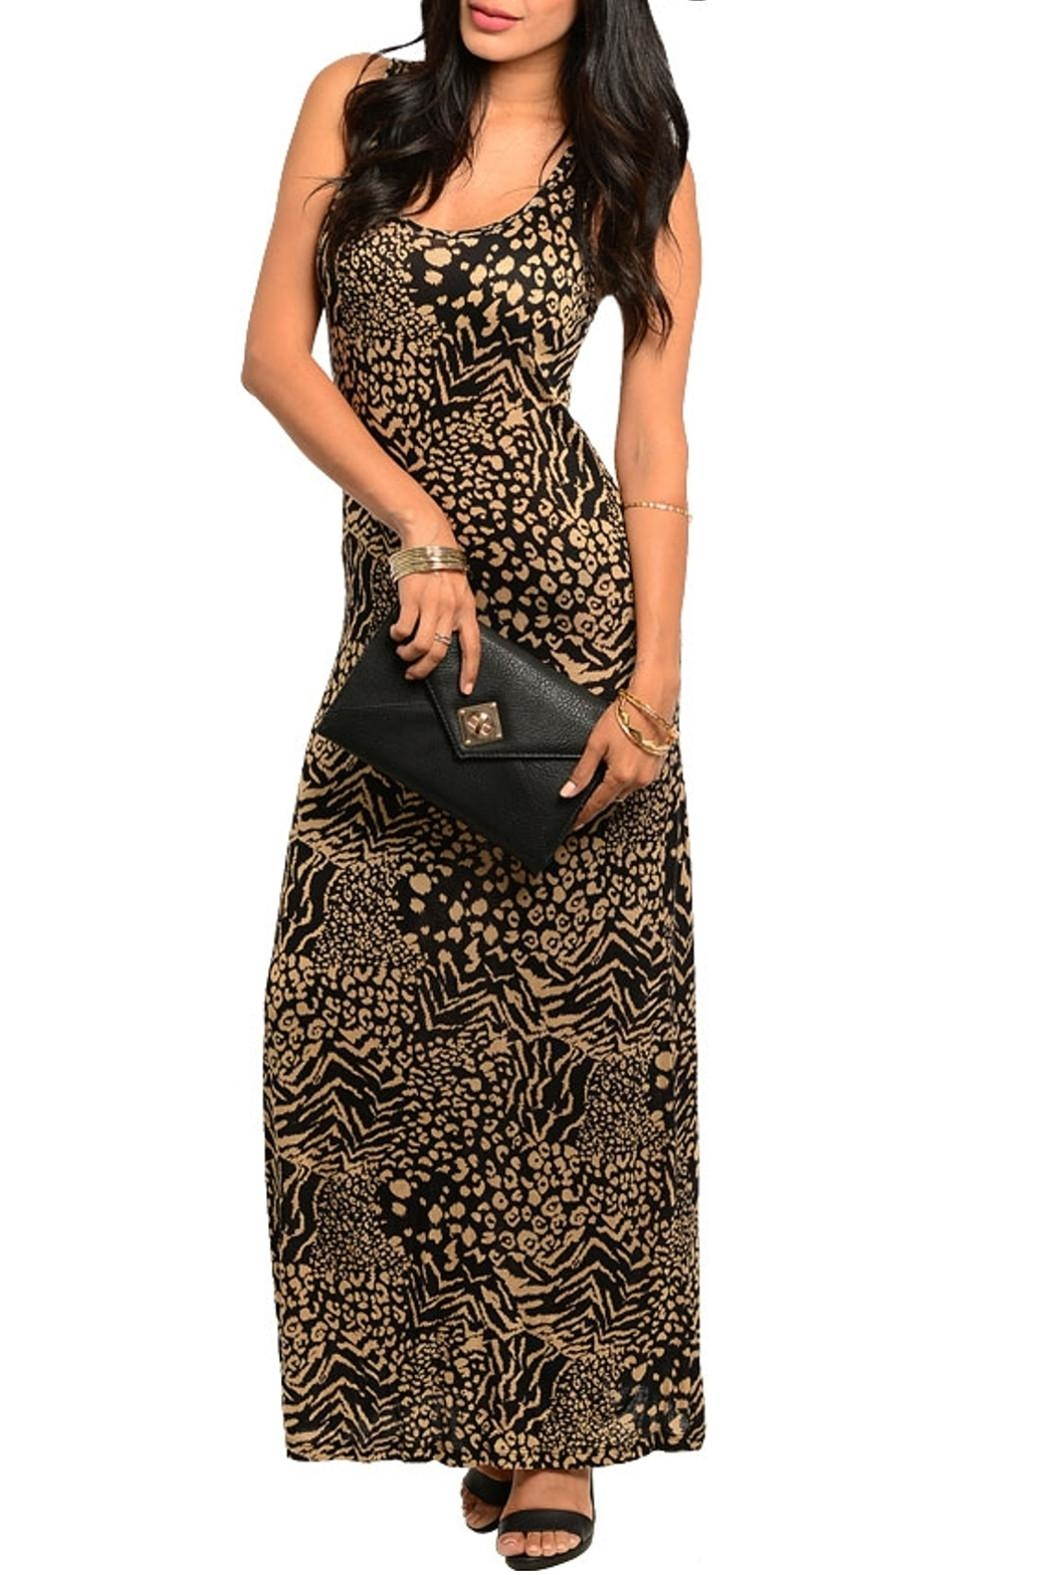 Cherish Cheetah Maxi Dress - Main Image